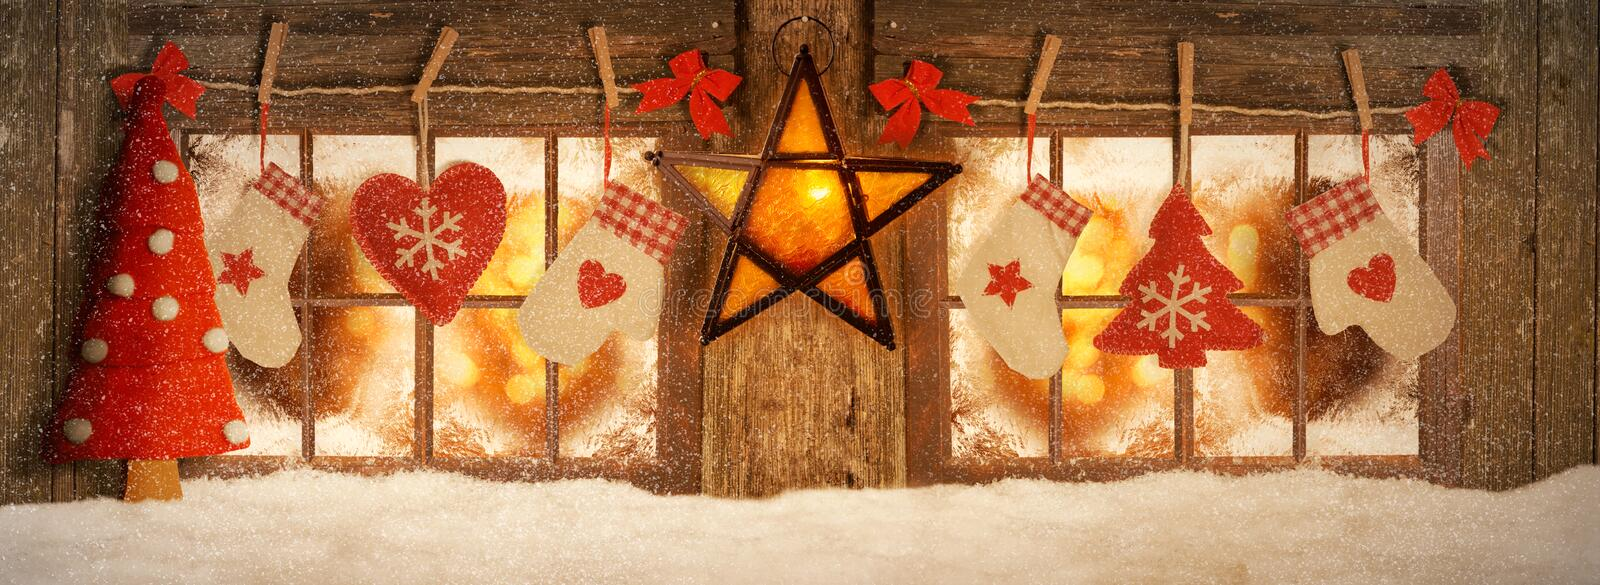 Decorated for Christmas windows. Mood lighting royalty free stock photos